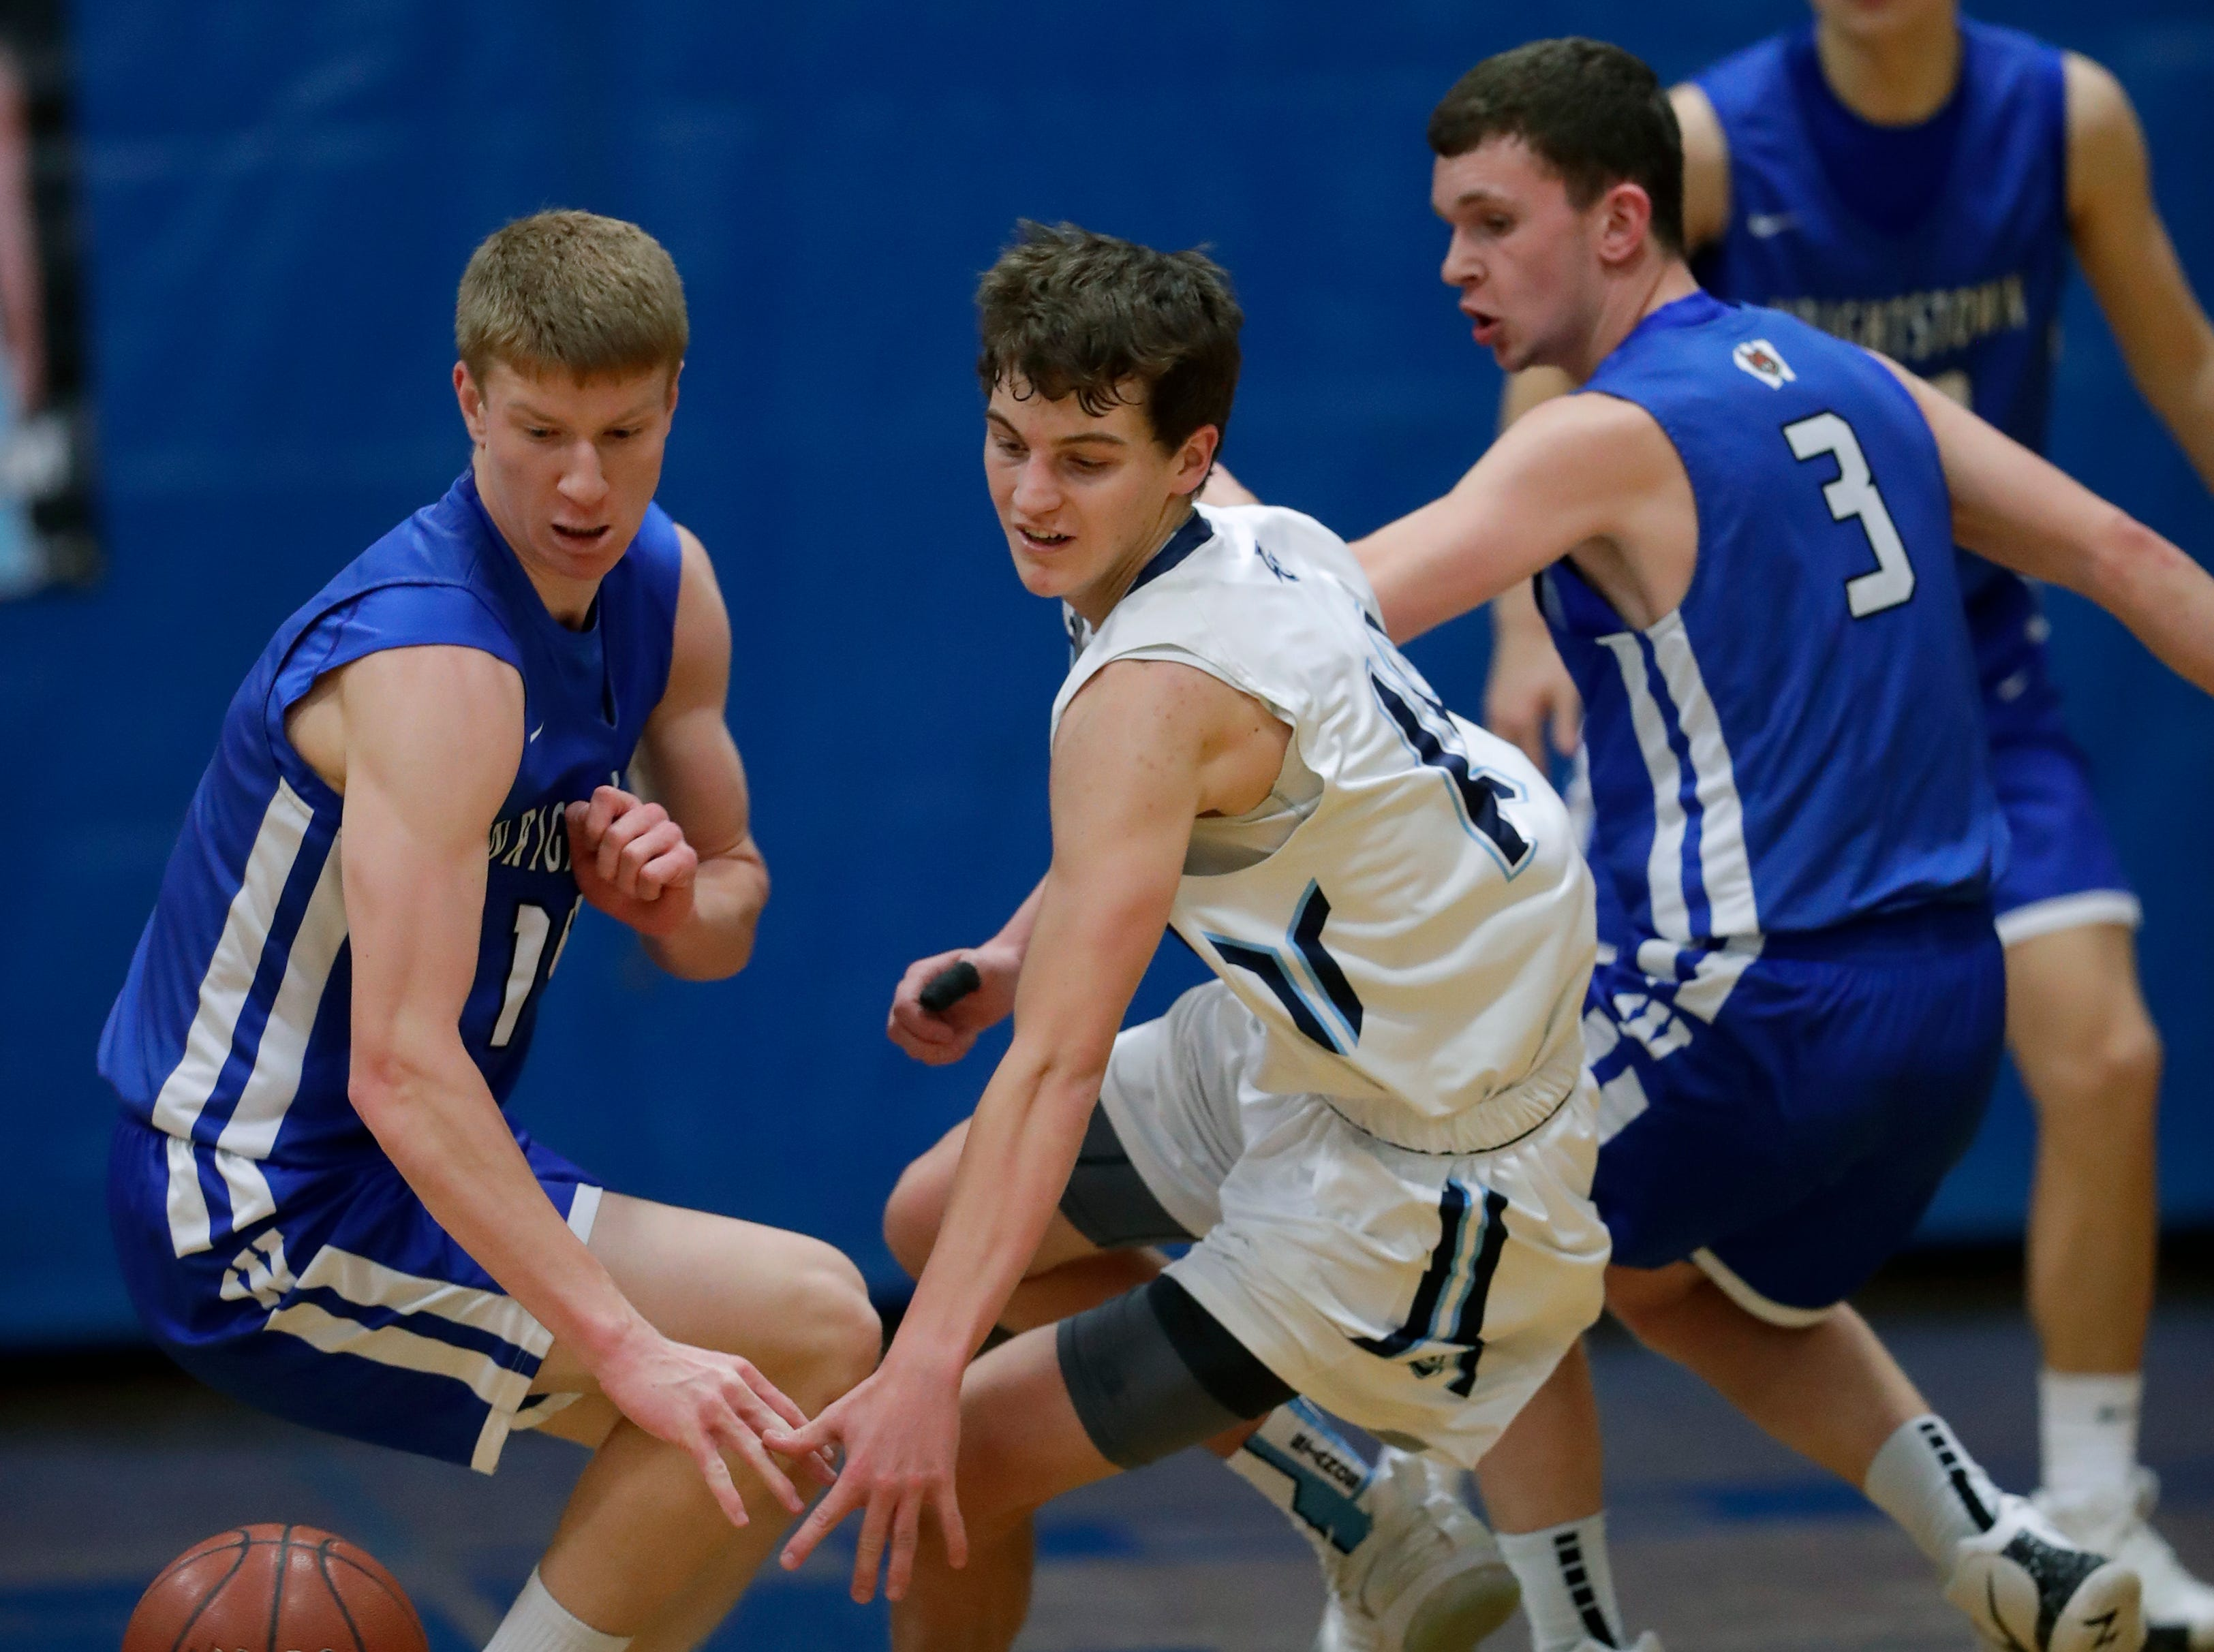 Little Chute High School's Logan Plate, center, battels for a loose ball against Wrightstown High School's Mayson Hazaert, left, and Will Braeger (3) during their boys basketball game Friday, February 1, 2019, in Little Chute, Wis. 